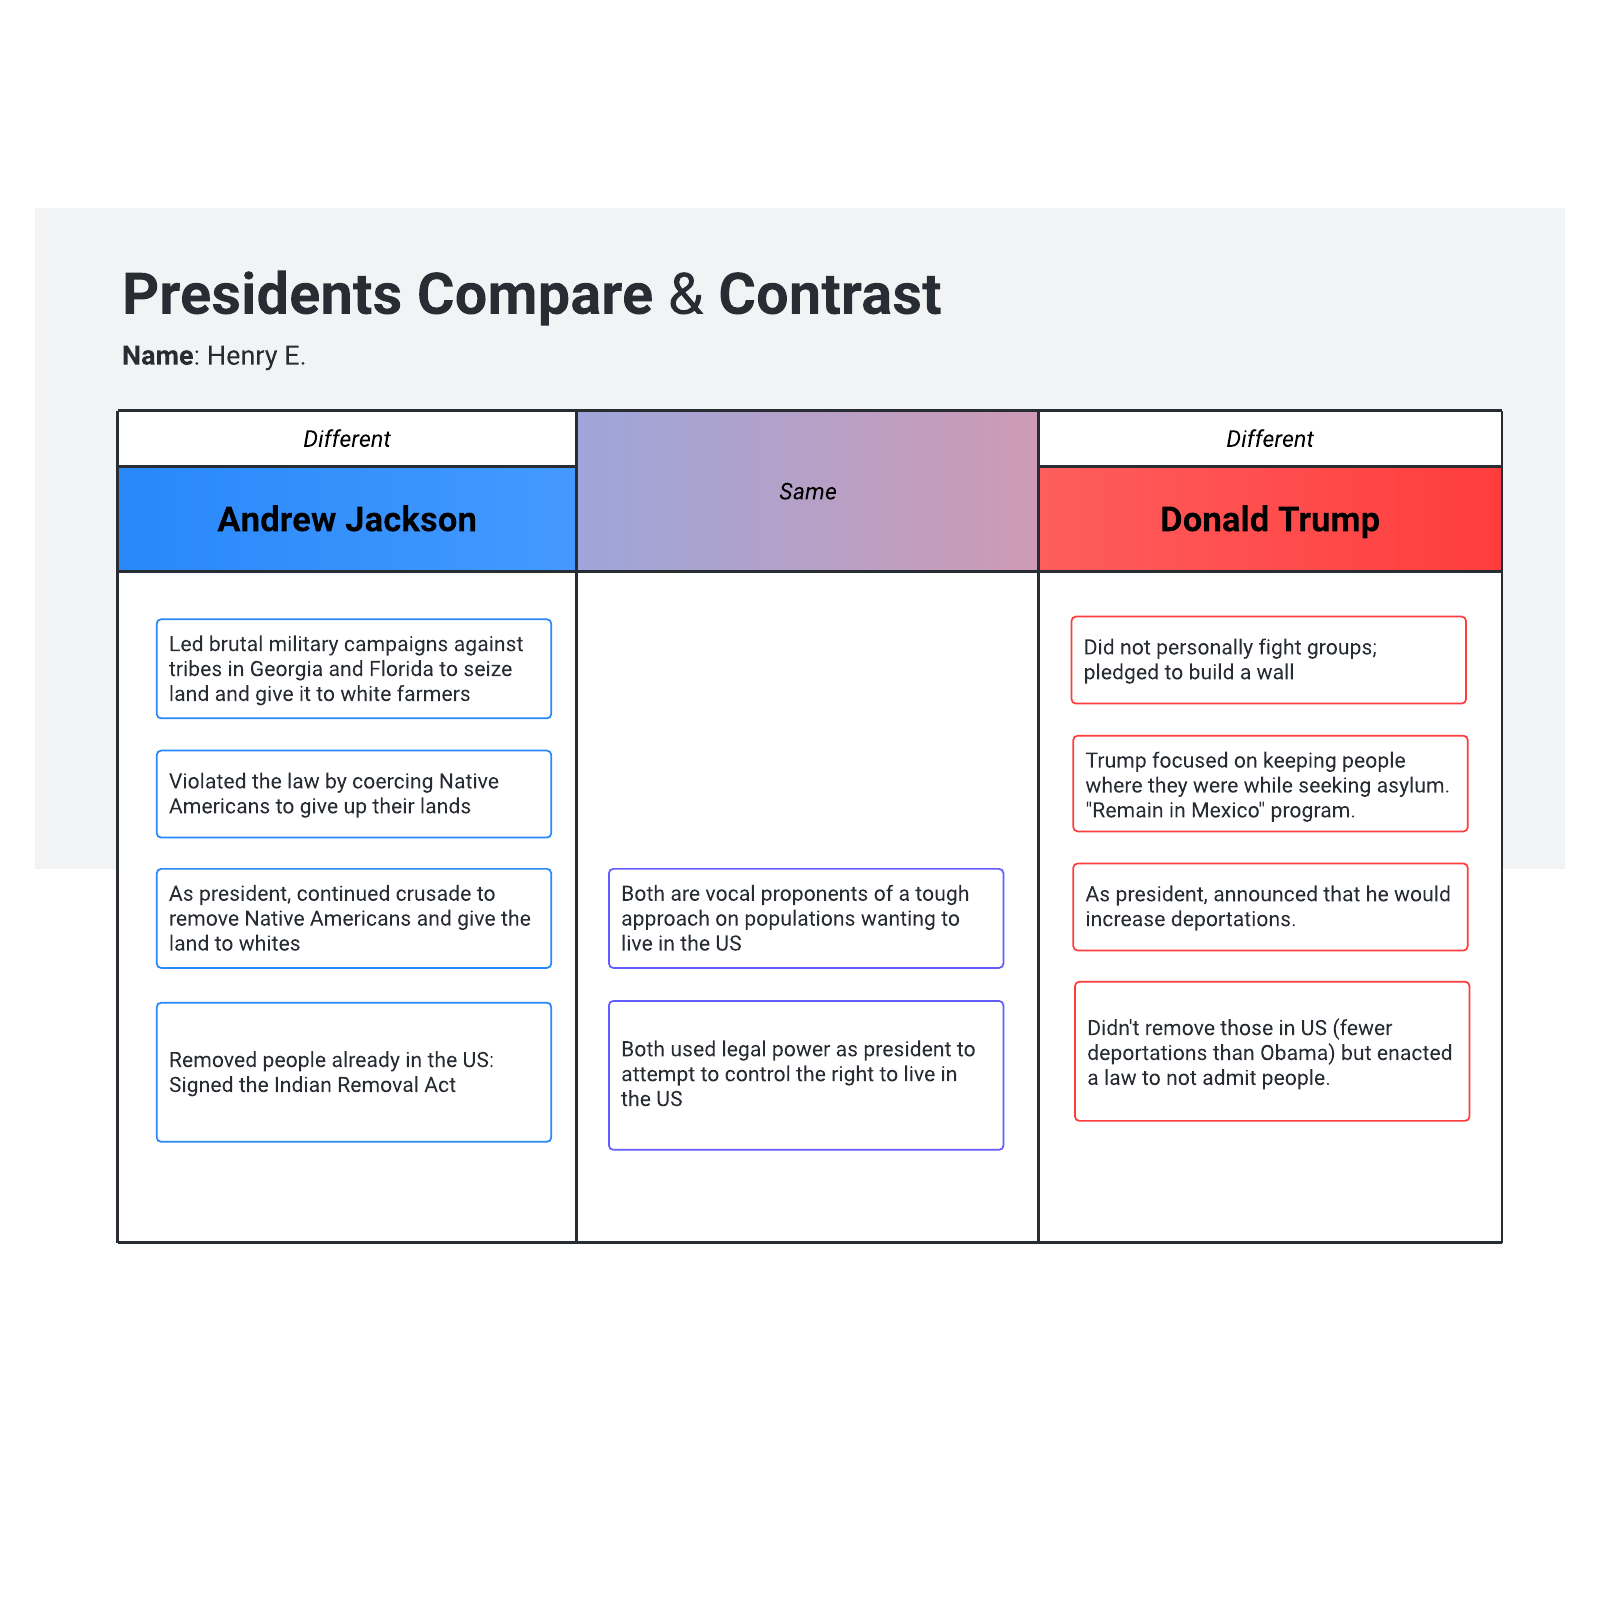 Compare and Contrast: 2 Presidents